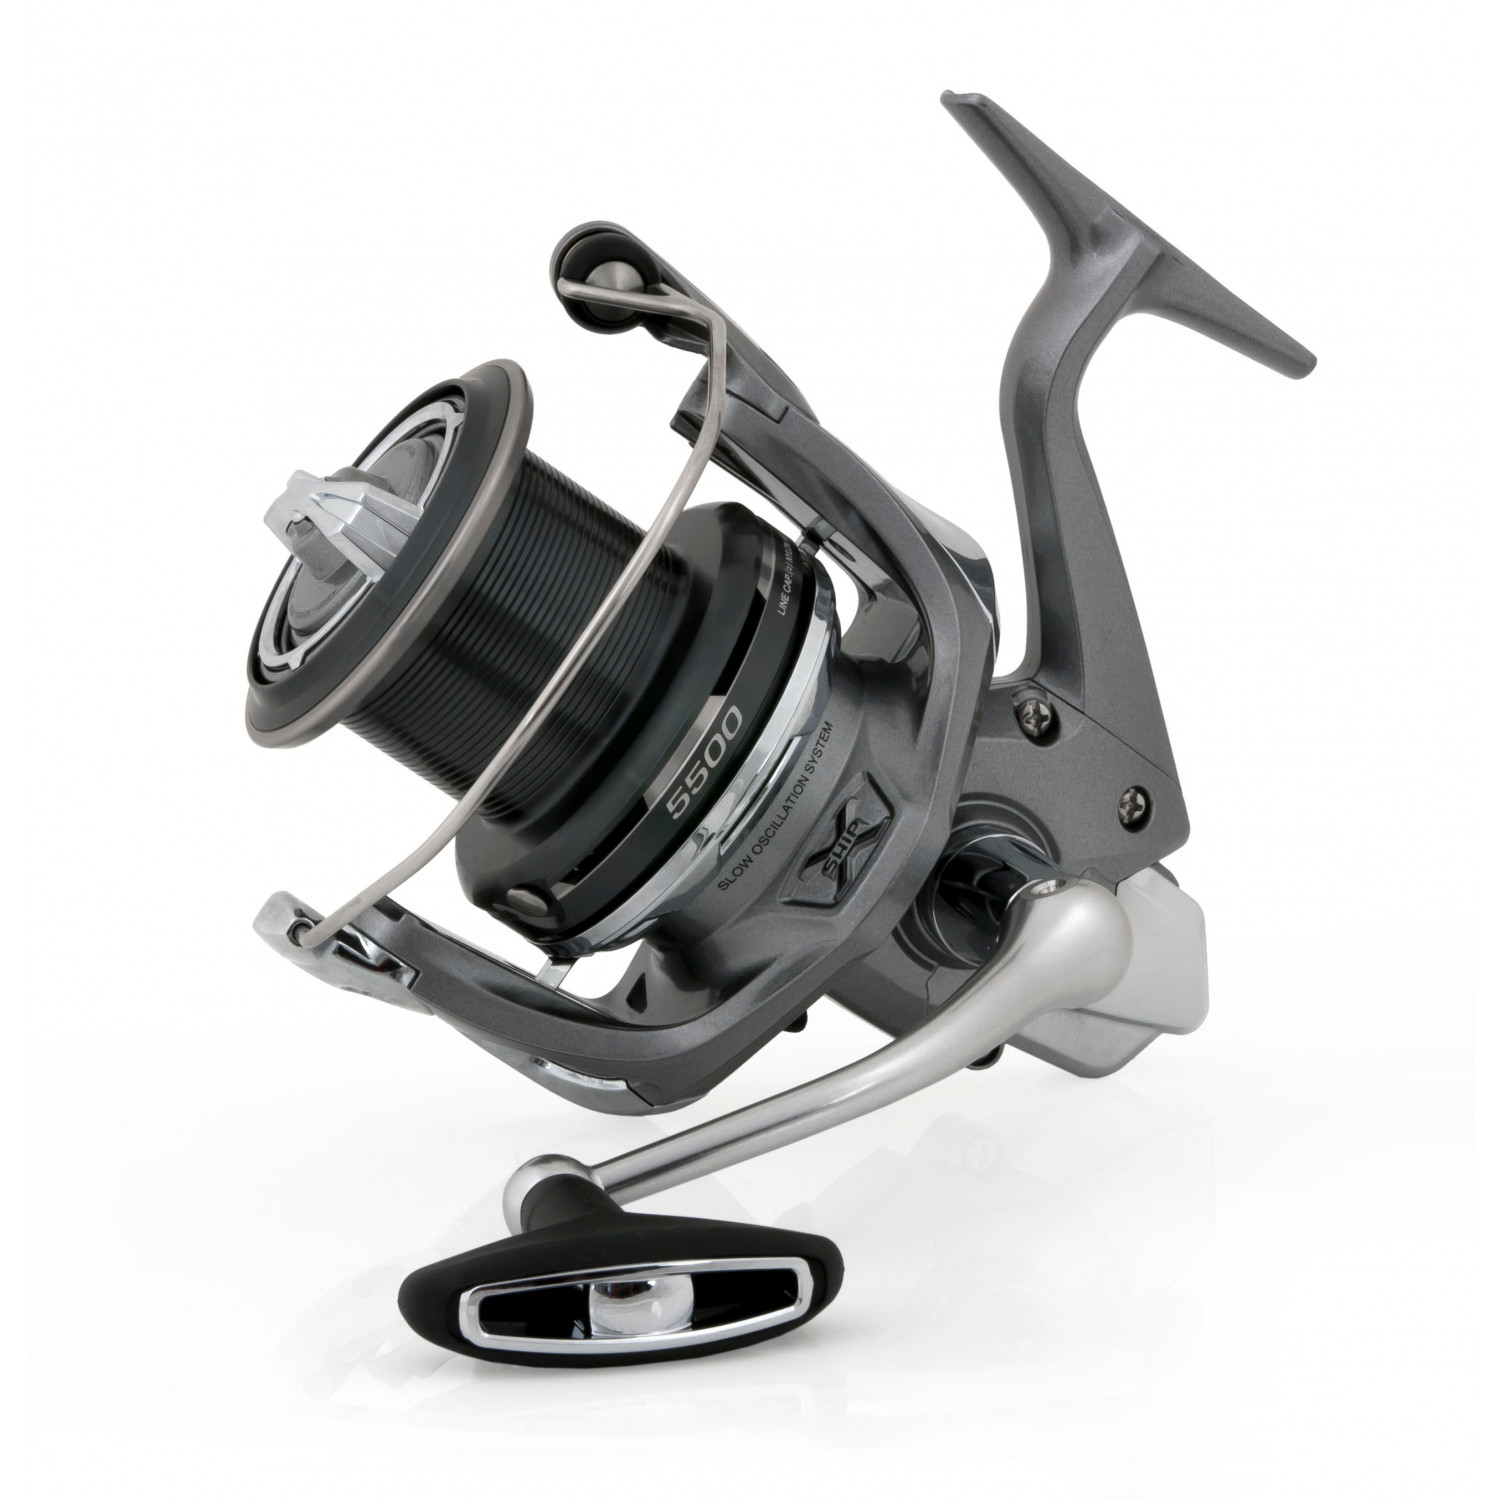 Shimano Ultegra Xsd Big Pit Surfcasting Reel With Instant Drag System